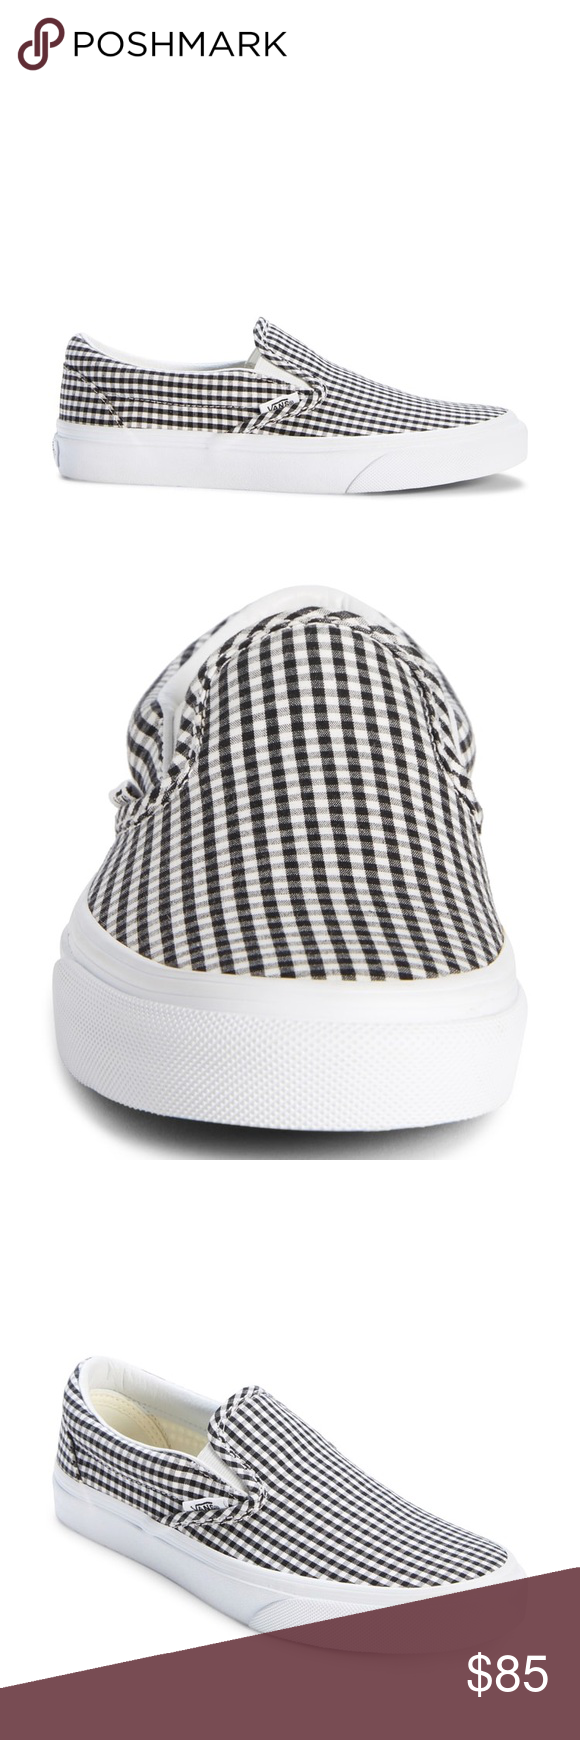 20ca0bf1d0ca Gingham Vans slip on style New with tags. Sold out in stores. Great addition